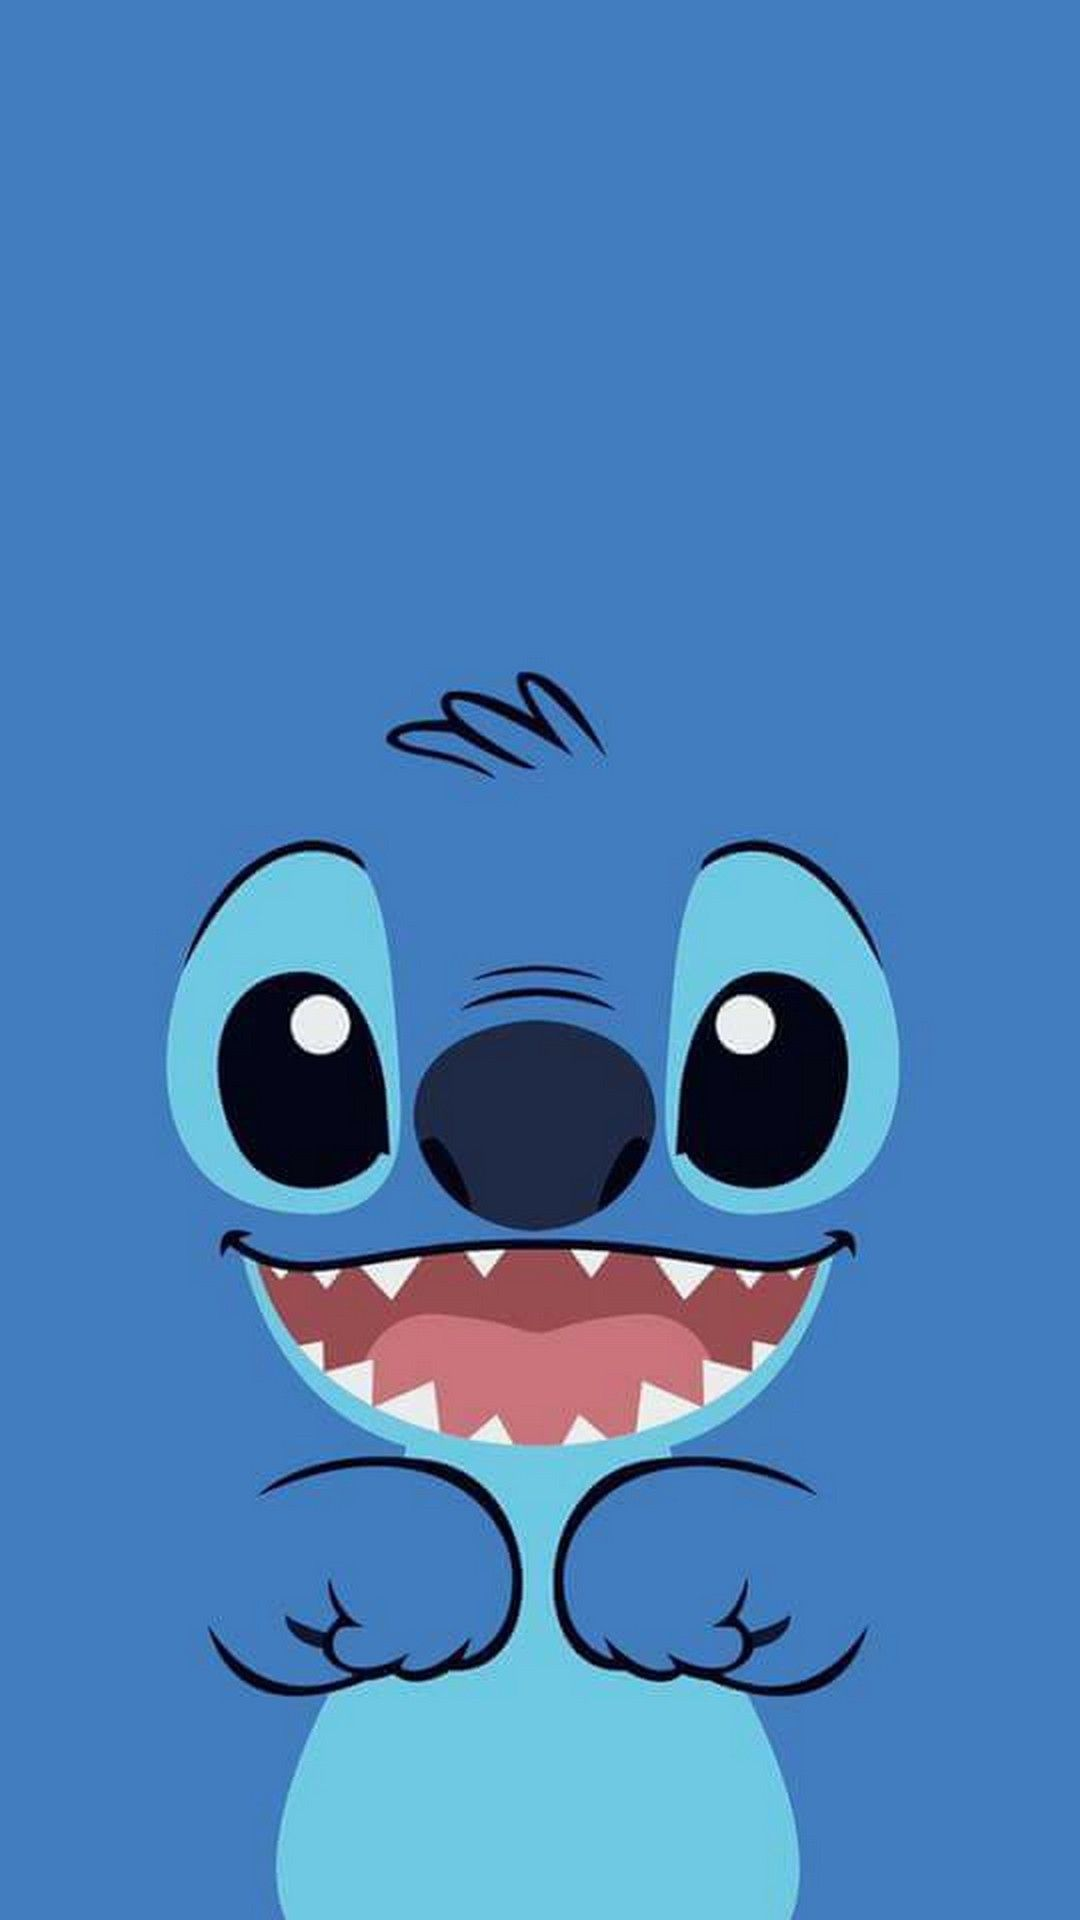 1080x1920 Stitch Disney Wallpaper For Mobile Android | Best HD Wallpapers ...